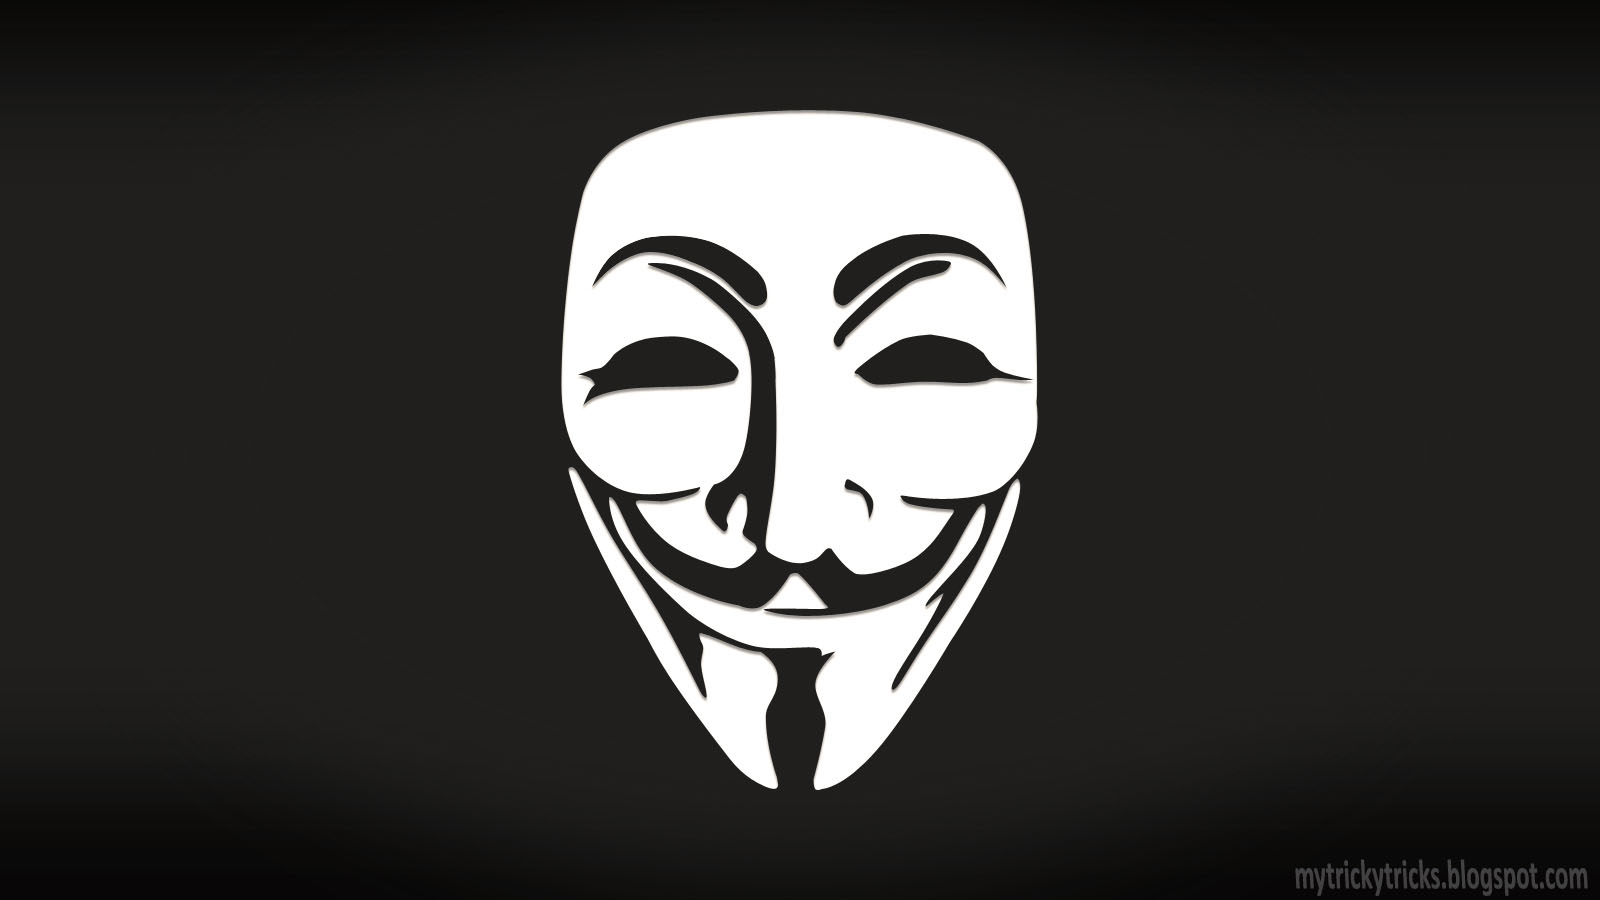 anonymous face mask wallpaper - photo #25